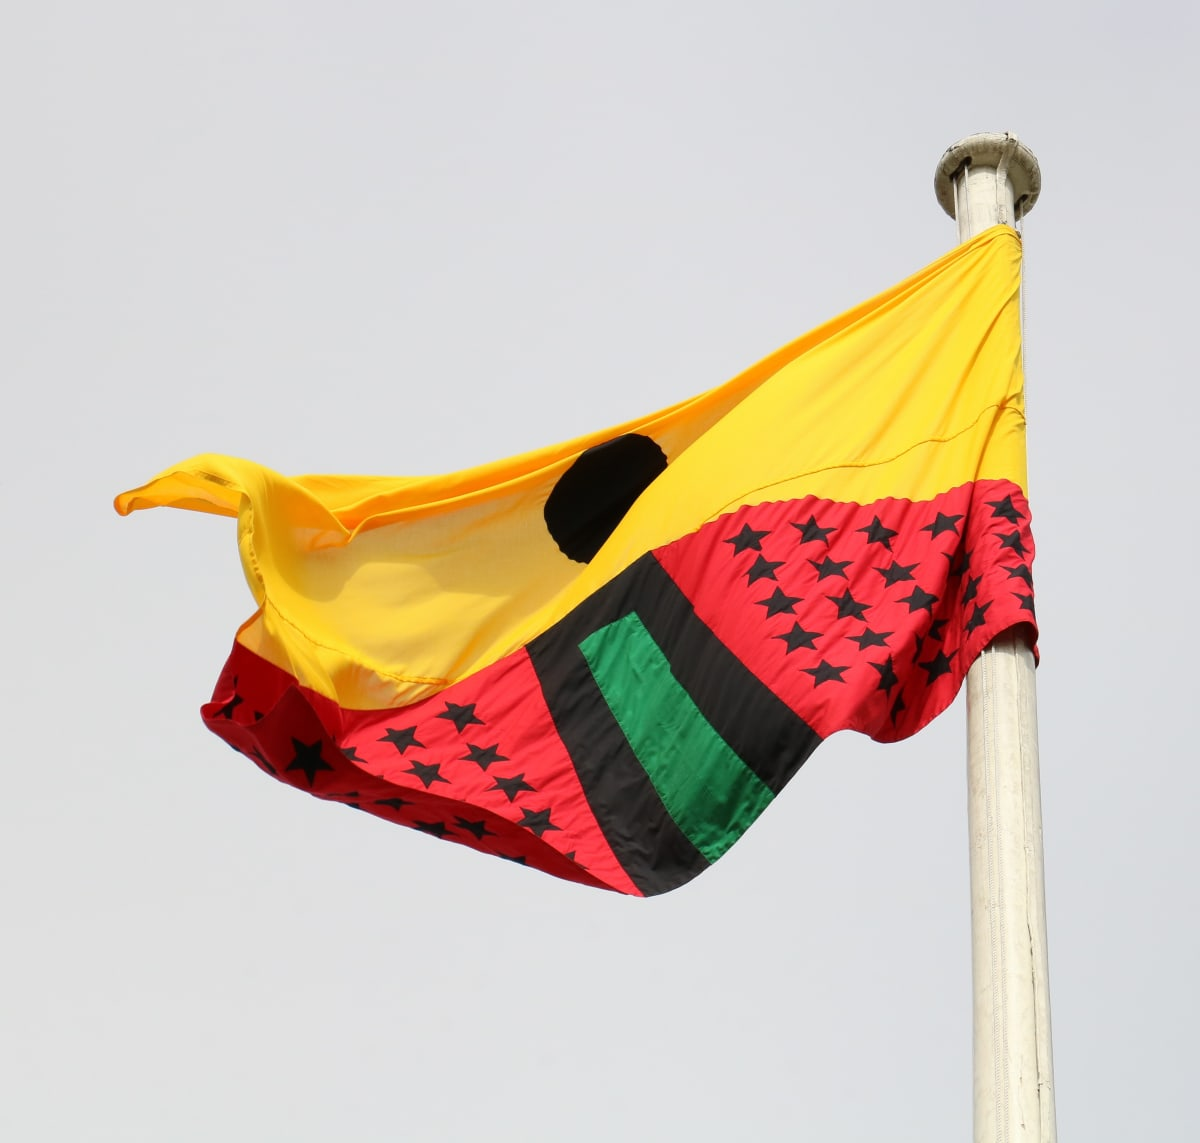 Larry Achiampong PAN AFRICAN FLAG FOR THE RELIC TRAVELLERS' ALLIANCE, 2017 Appliqué Flag 200 x 300 cm Courtesy of the artist. Commissioned by Somerset House.